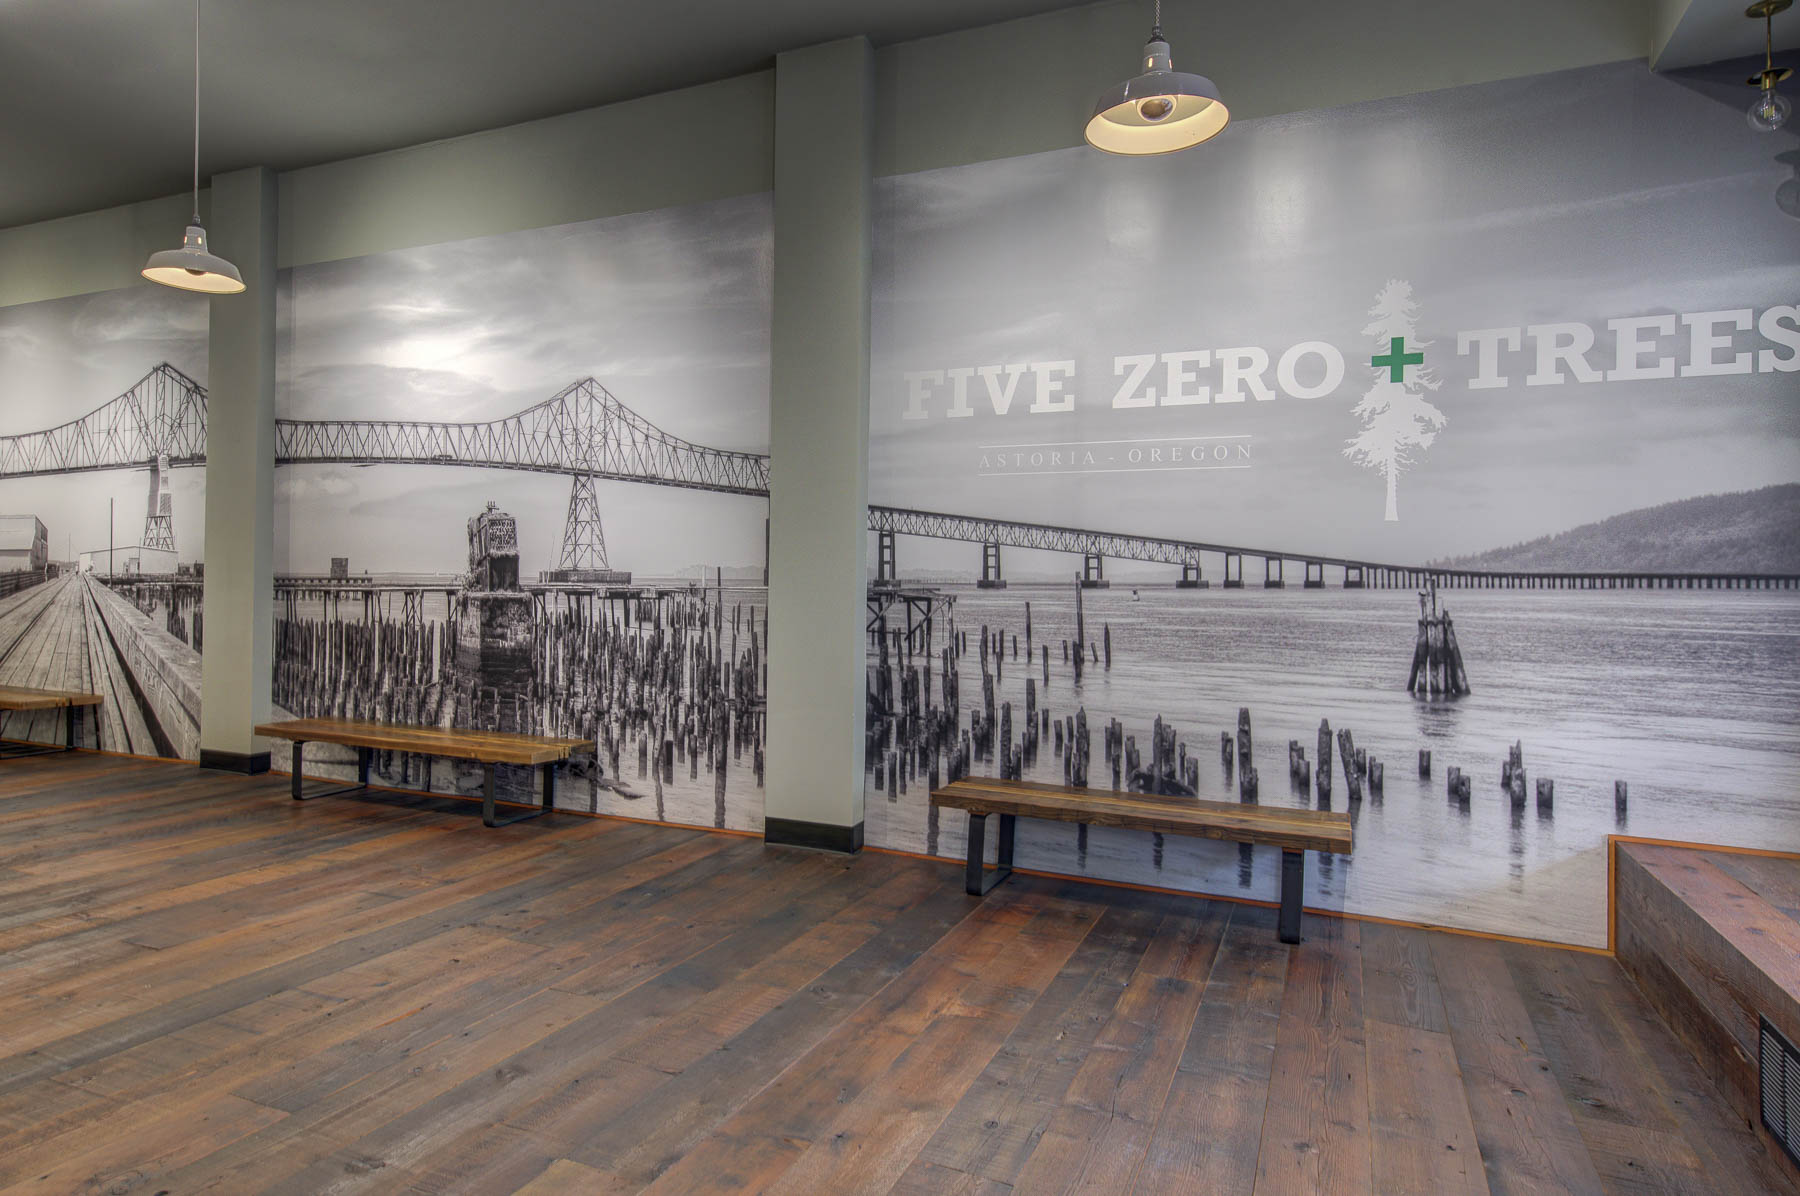 Harka Architecture_Five Zero Trees Astoria_Cannabis Retail (8).jpg